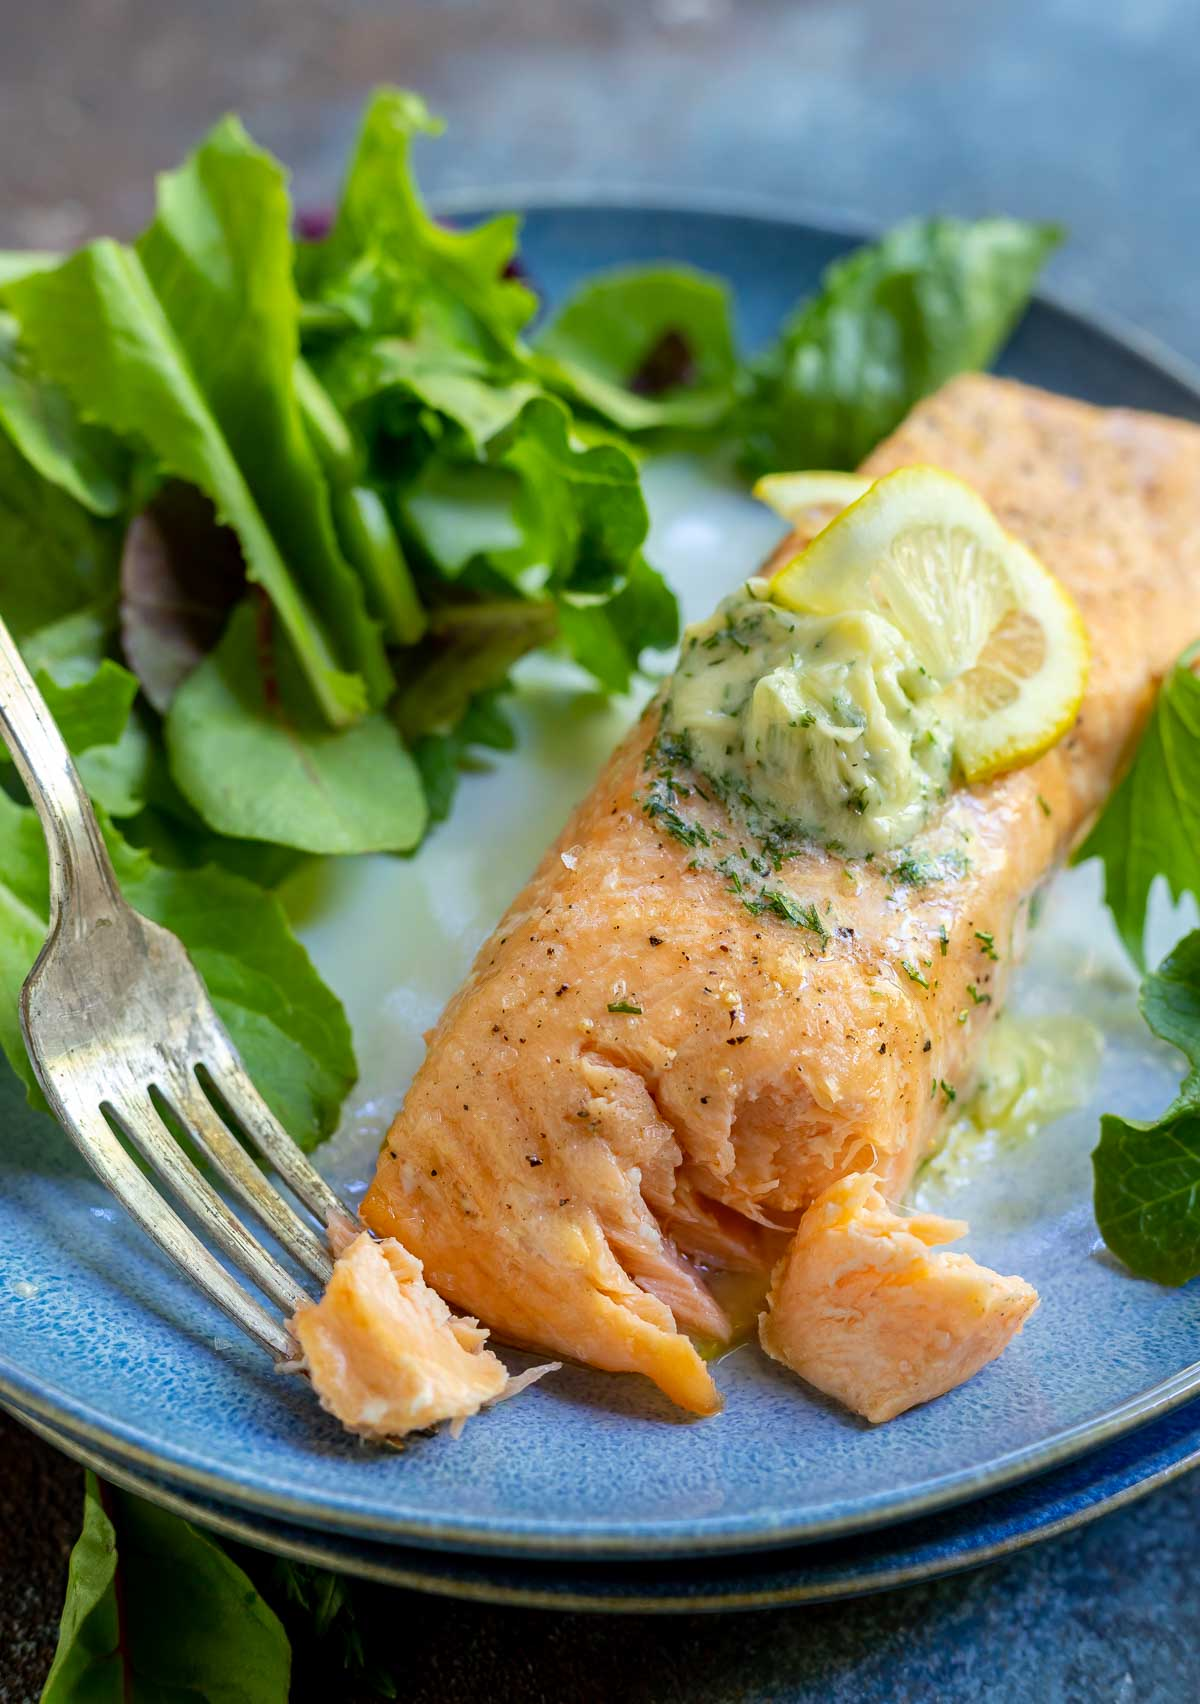 salmon fillet topped with butter and lemons on a blue plate